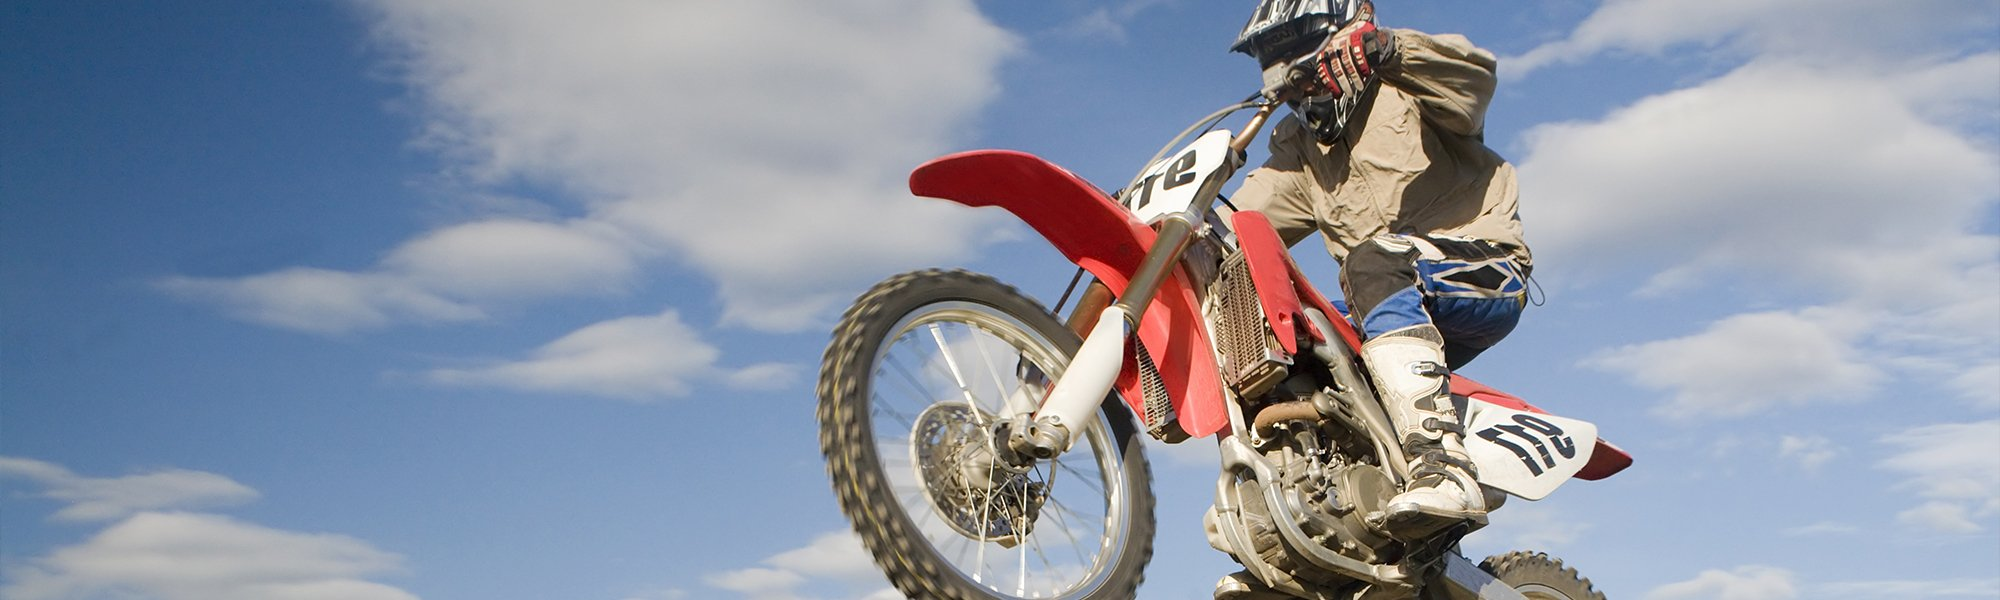 Dirt Bike Financing - Canada Powersports Financing